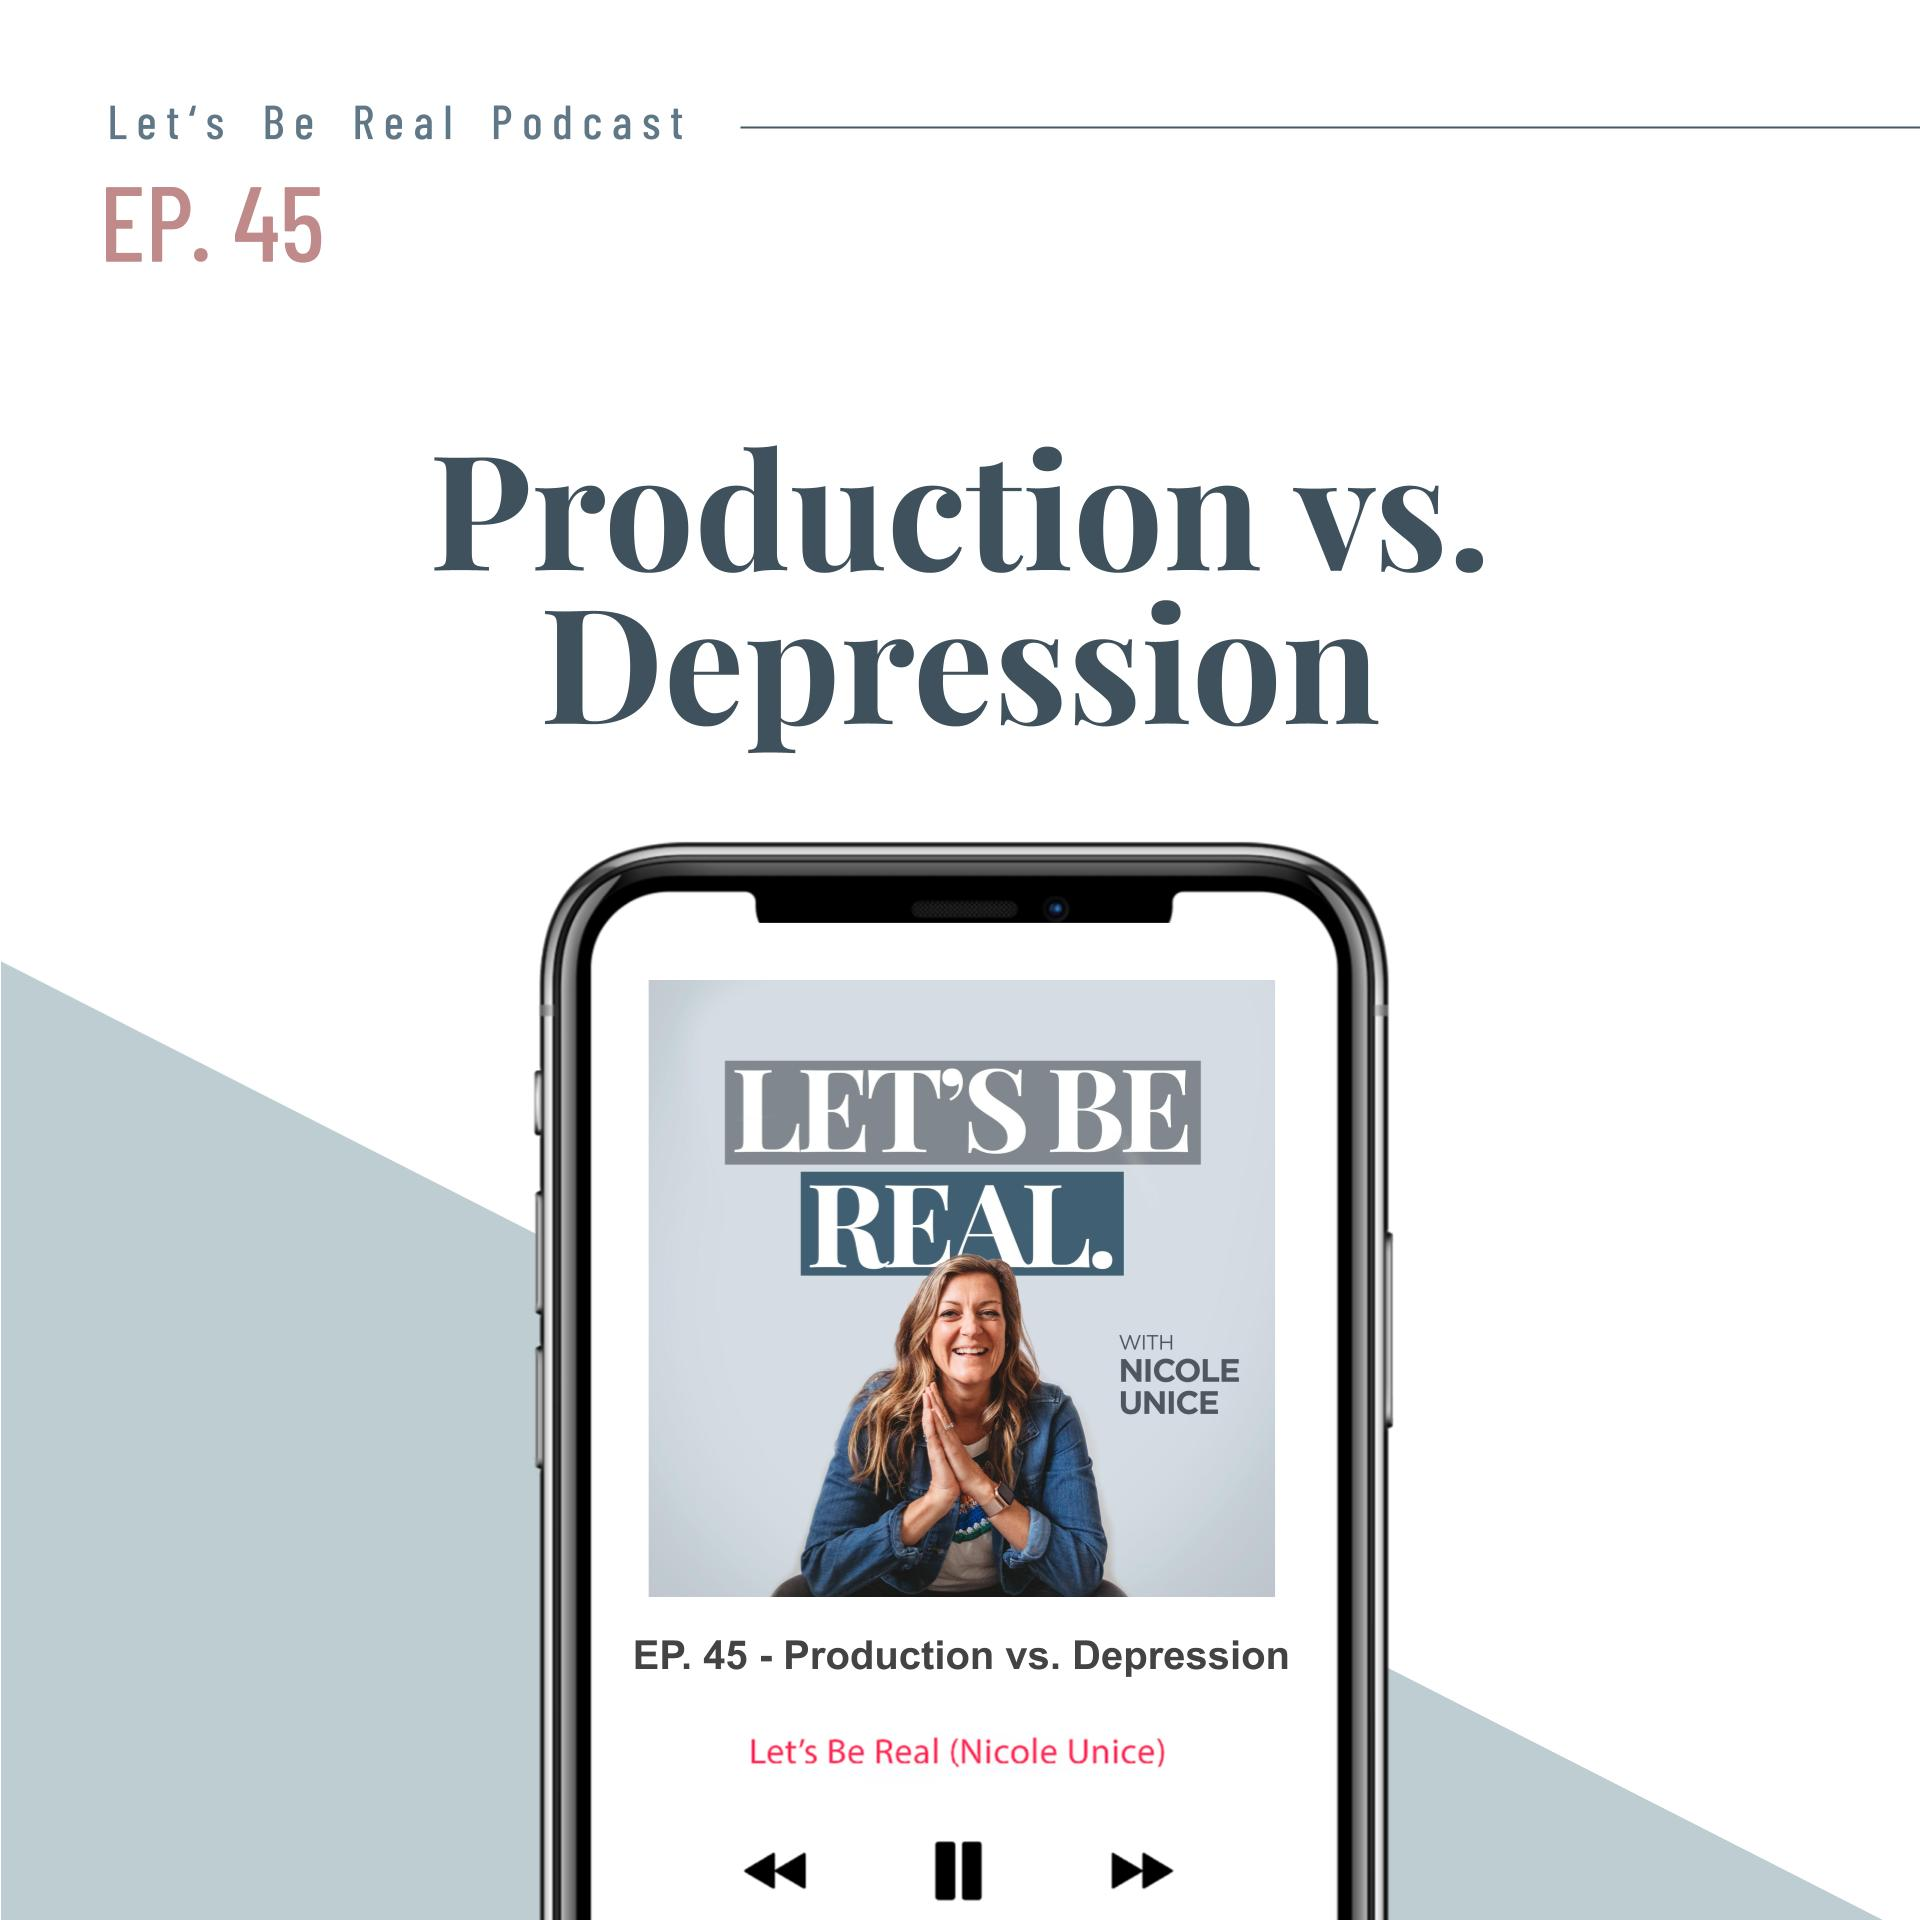 Production Vs. Depression | Let's Be Real Podcast, Episode 45